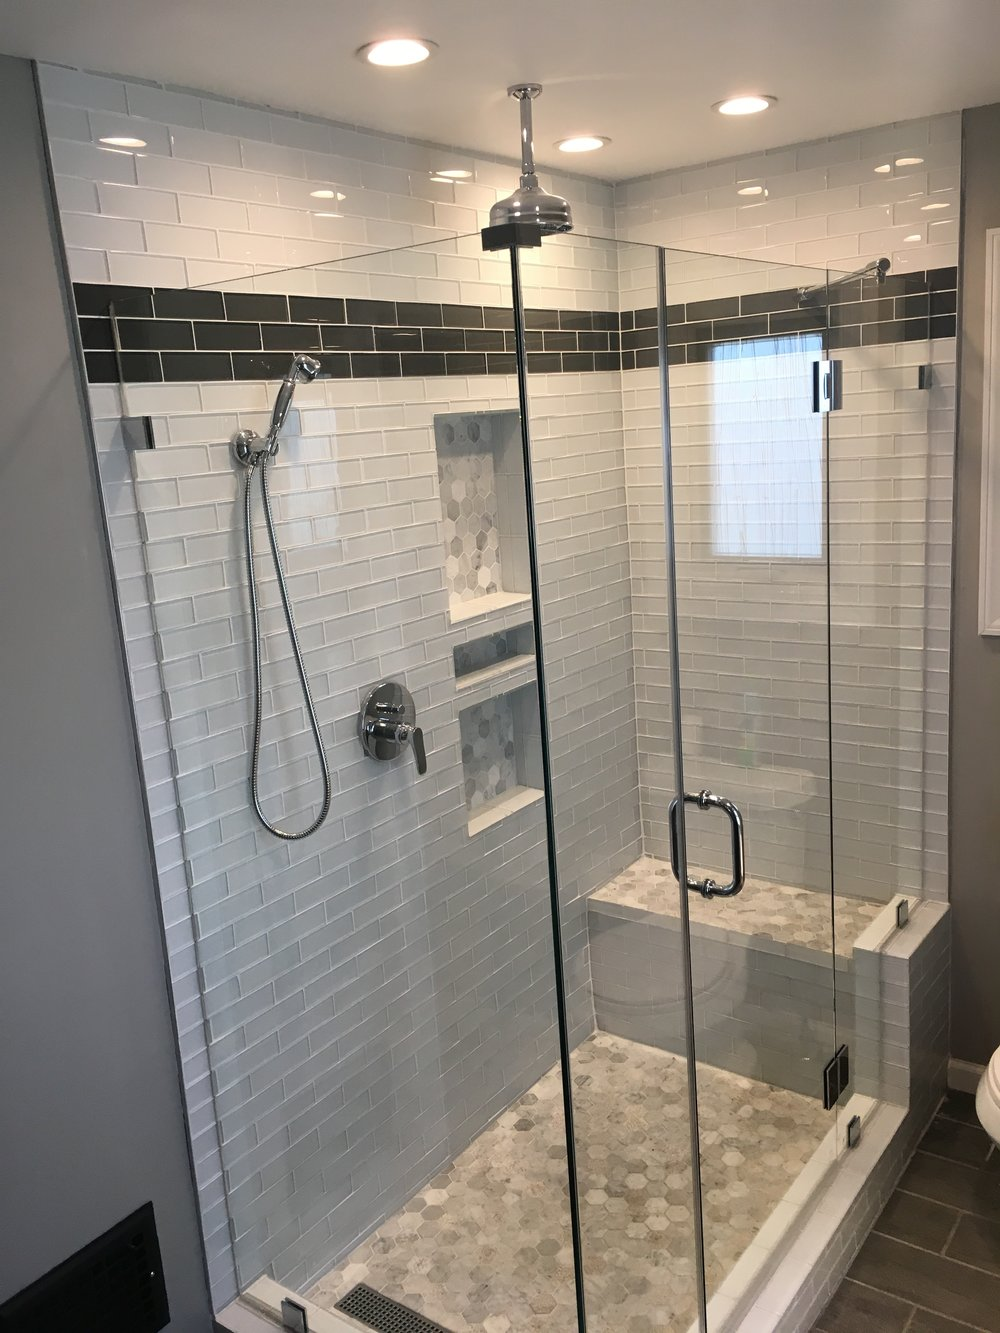 Glass to Glass Hinge Enclosure - At Eco Glass Designs anything is possible. Fully customize your enclosure in any way you can imagine.